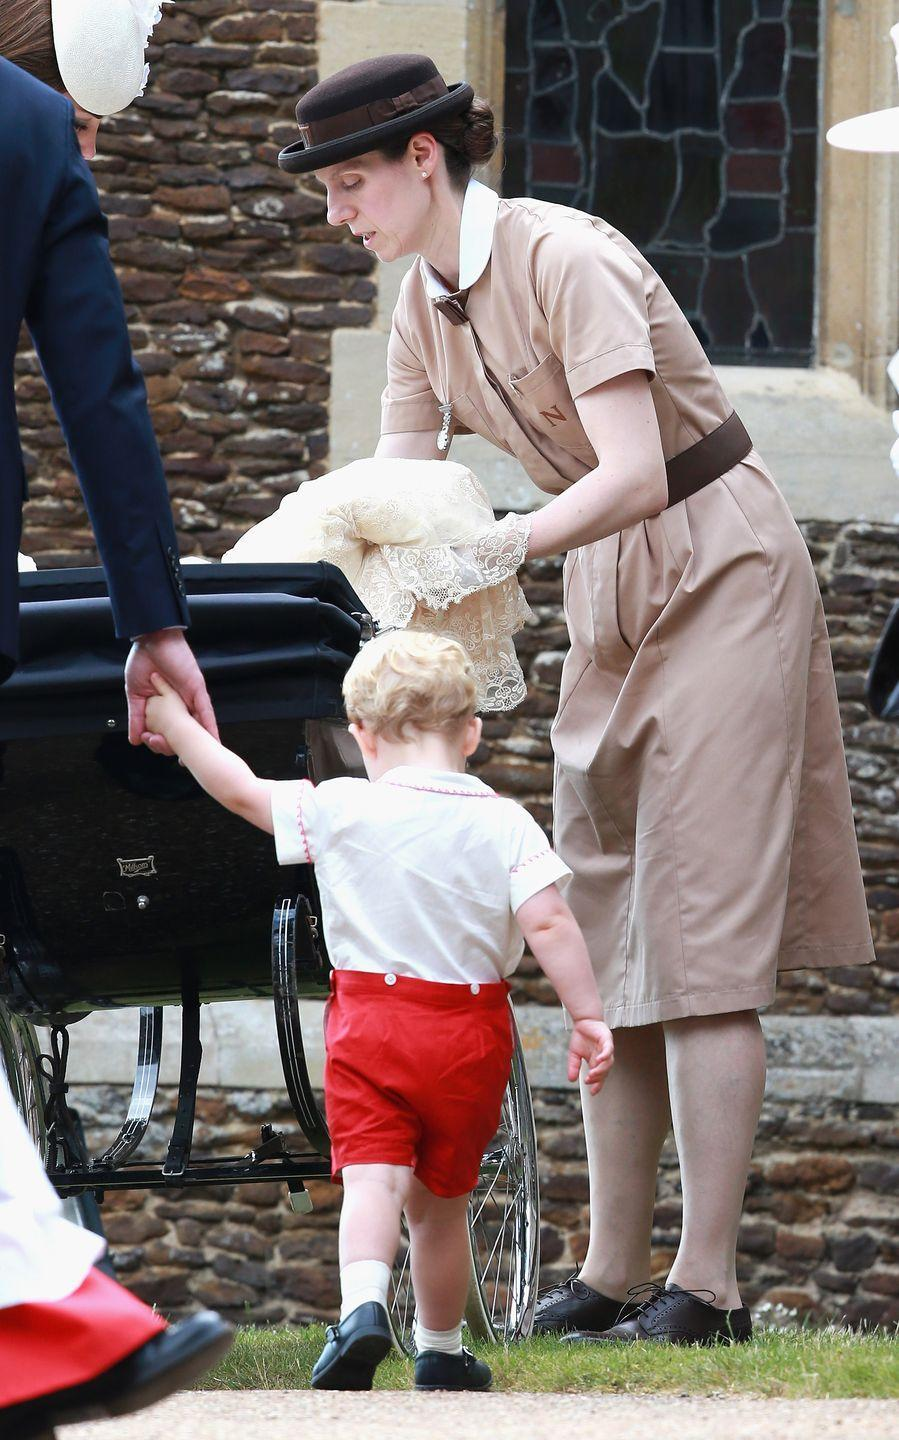 """<p>Since royal children grow up with two full-time working parents, a nanny seems necessary. Even though the royals currently raising young children are reportedly more hands-on than past generations, the Crown employs experts like <a href=""""https://www.thesun.co.uk/fabulous/6123025/royal-nanny-maria-borrallo-kate-middleton-children-baby/"""" rel=""""nofollow noopener"""" target=""""_blank"""" data-ylk=""""slk:Maria Borrallo"""" class=""""link rapid-noclick-resp"""">Maria Borrallo</a> for assistance.</p>"""